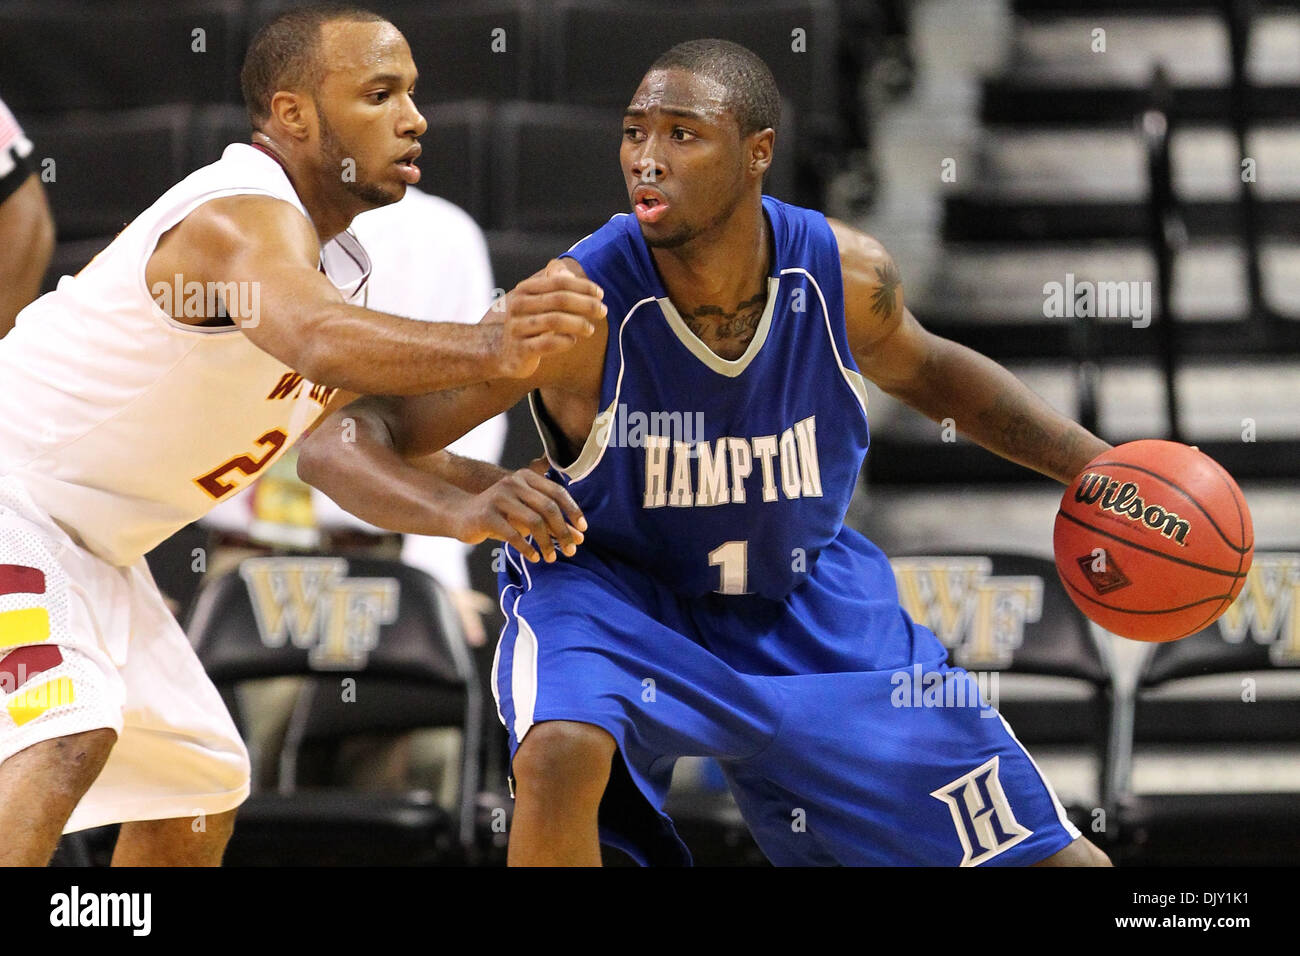 Nov. 16, 2010 - Winston-Salem, North Carolina, United States of America - Hampton Pirates guard Darrion Pellum (1) drives on Winthrop Eagles guard Gideon Gamble (2). Half Time score Hampton 23- Winthrop 16 (Credit Image: © Jim Dedmon/Southcreek Global/ZUMApress.com) - Stock Image